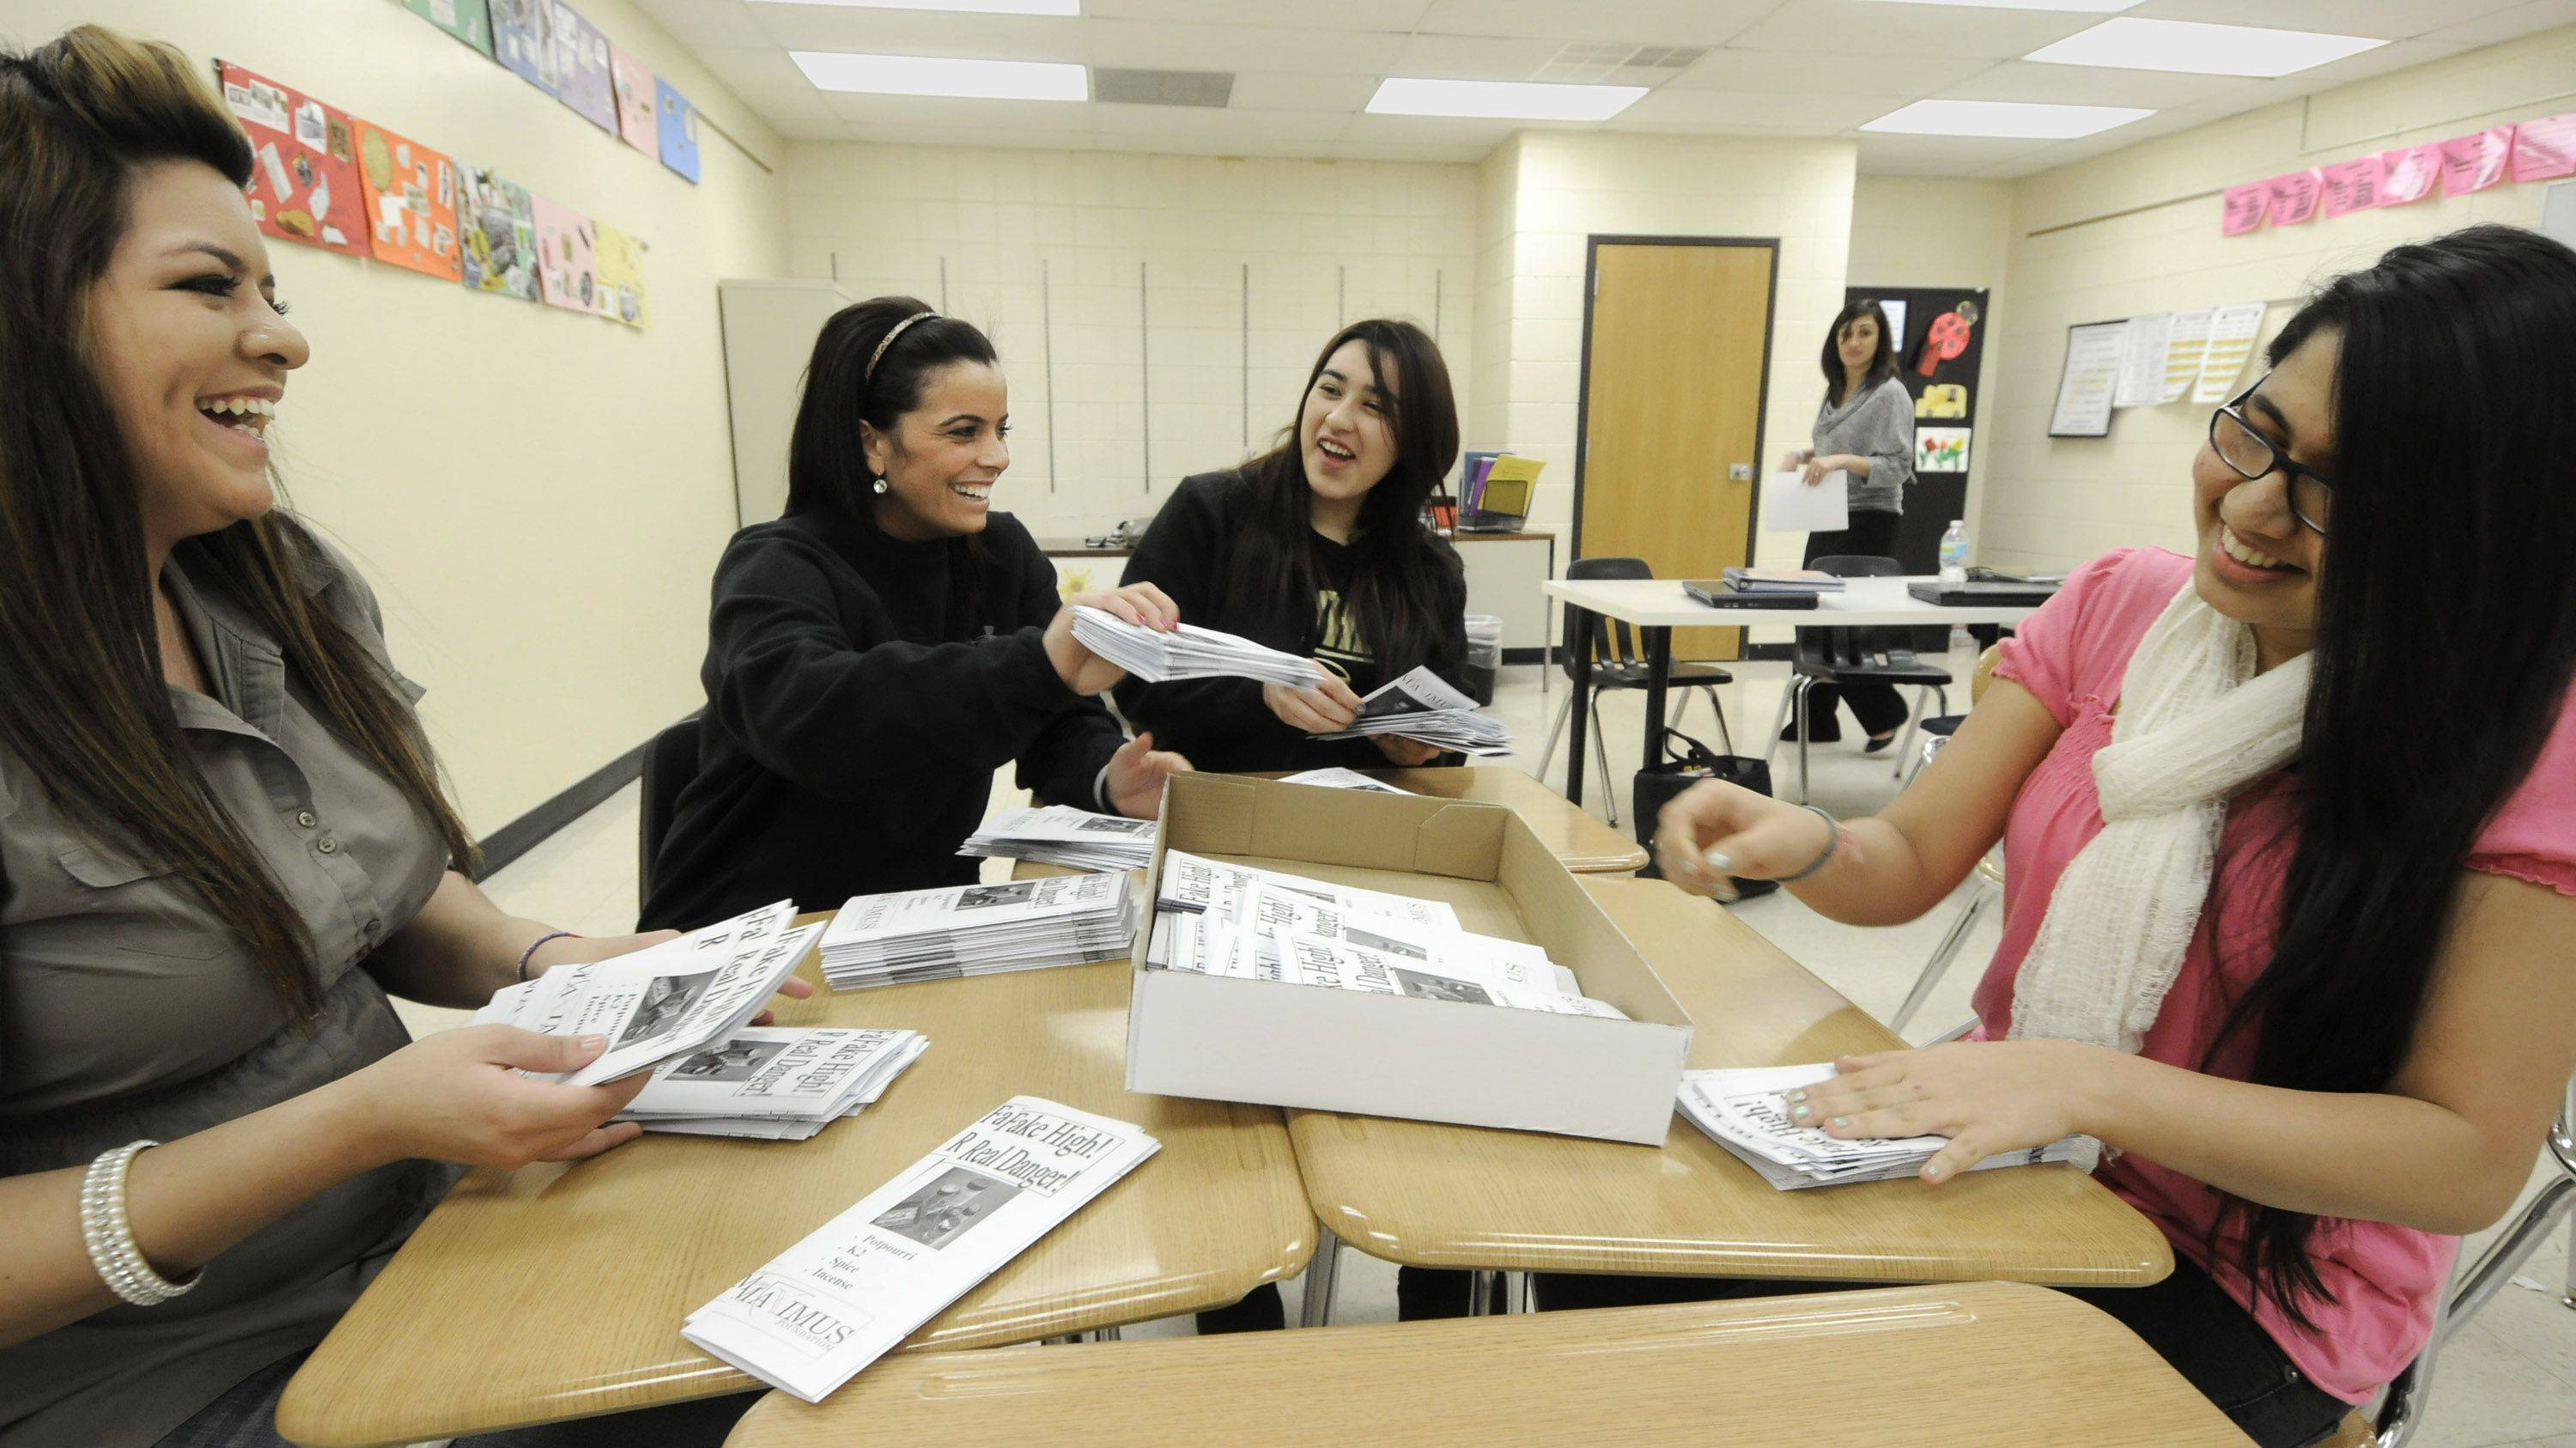 Glenbard North High School Students for Students club members Elizabeth Ayala, Marissa Cusumano, Maria Salas, and Ishita Mehta sort brochures to be handed out at special forum on alcohol and drugs Wednesday night at the school. Cusumano, whose cousin died in November after trying synthetic marijuana, will be speaking at the program. ""